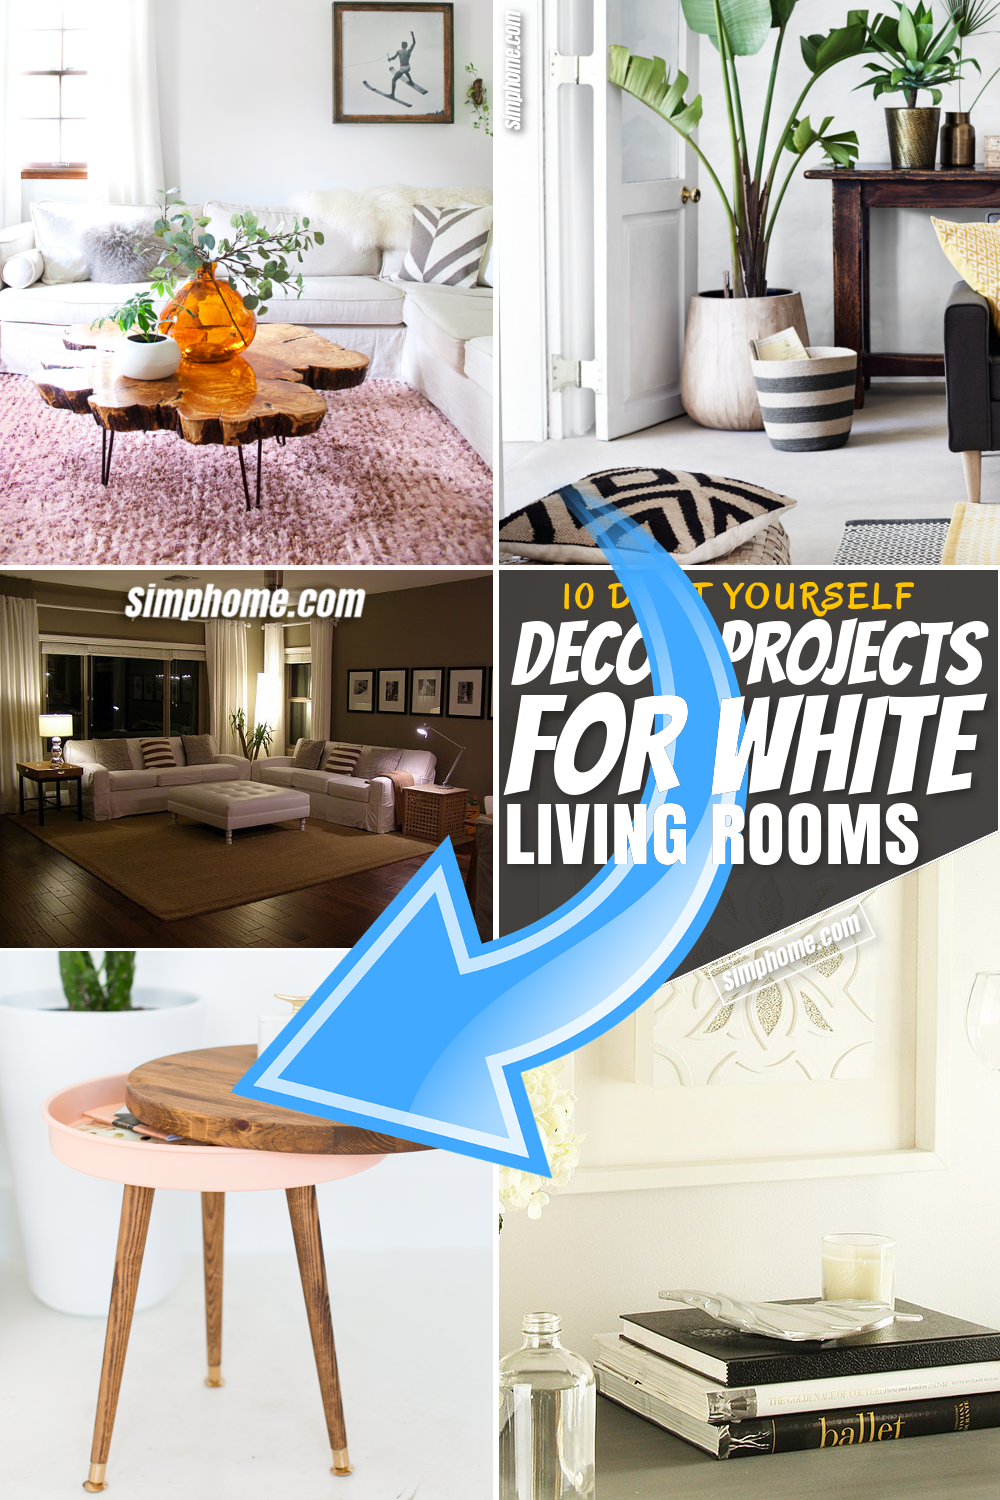 SIMPHOME.COM 10 DIY Decor Project for White Living Room Pinterest Featured Image